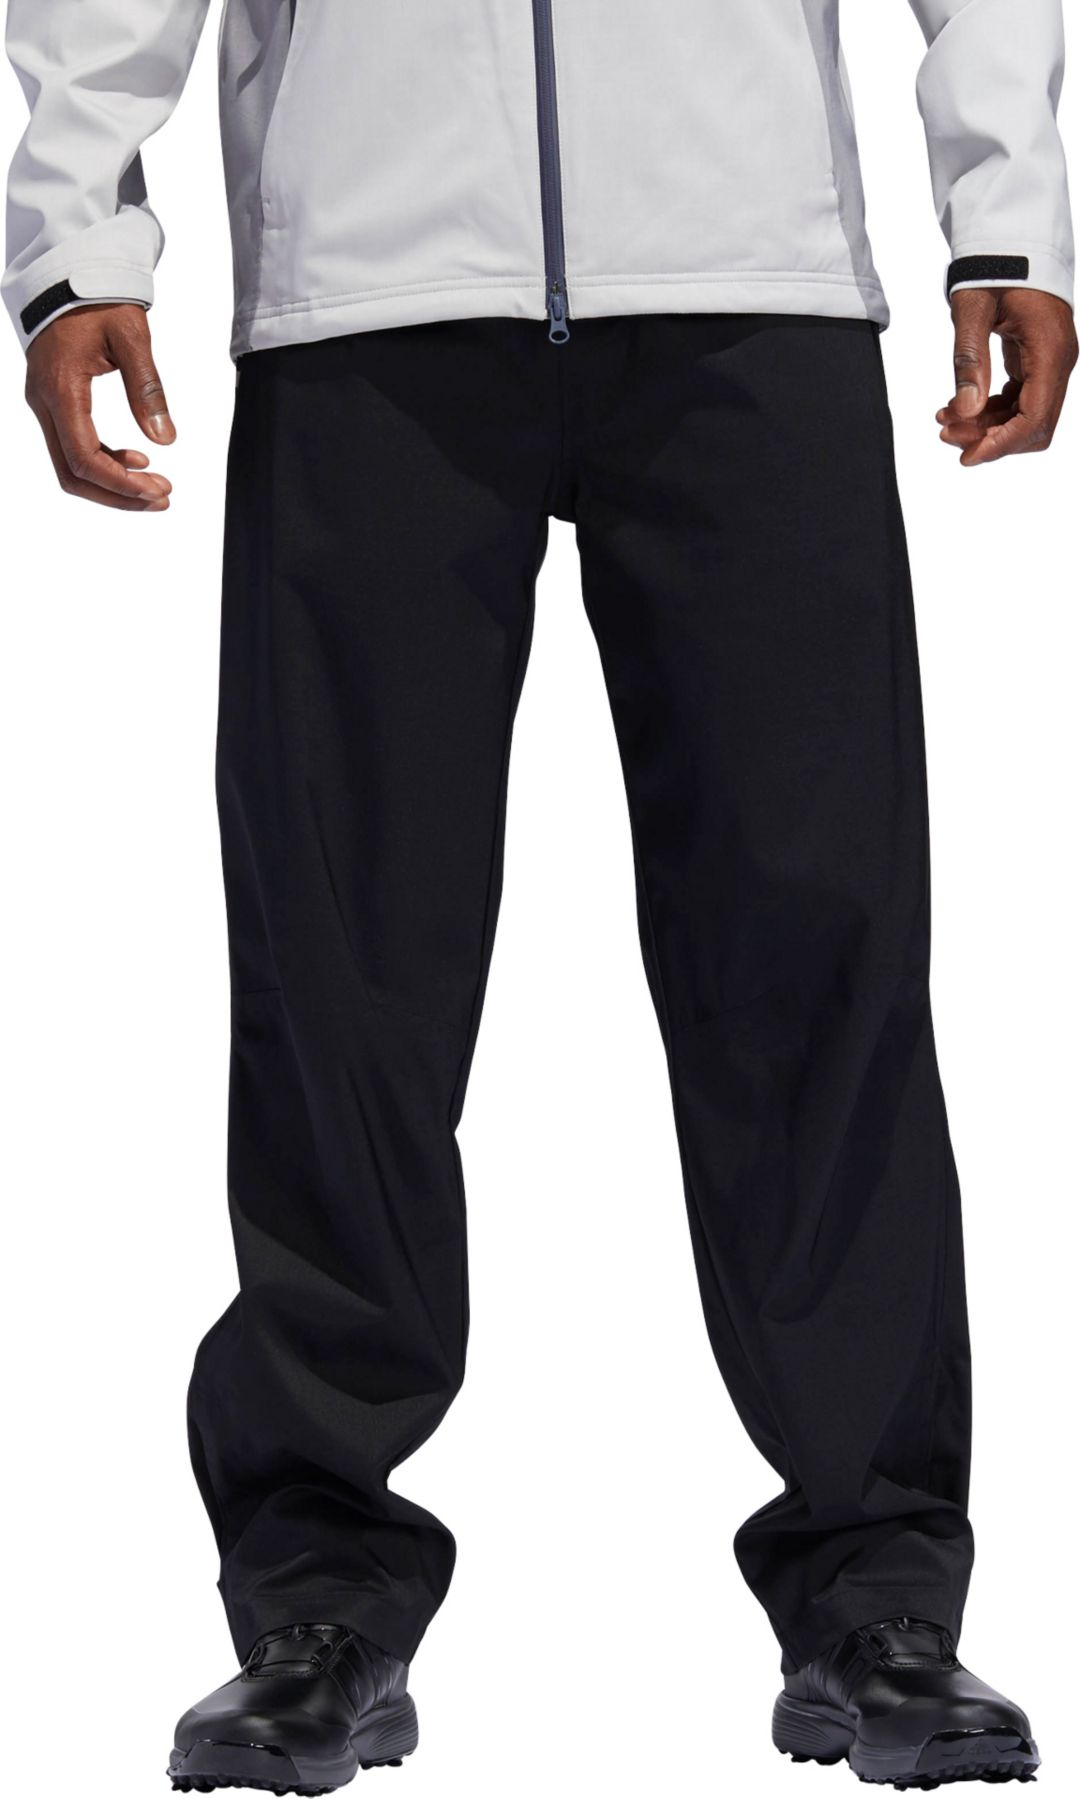 adidas Men's Climaproof Golf Rain Pants